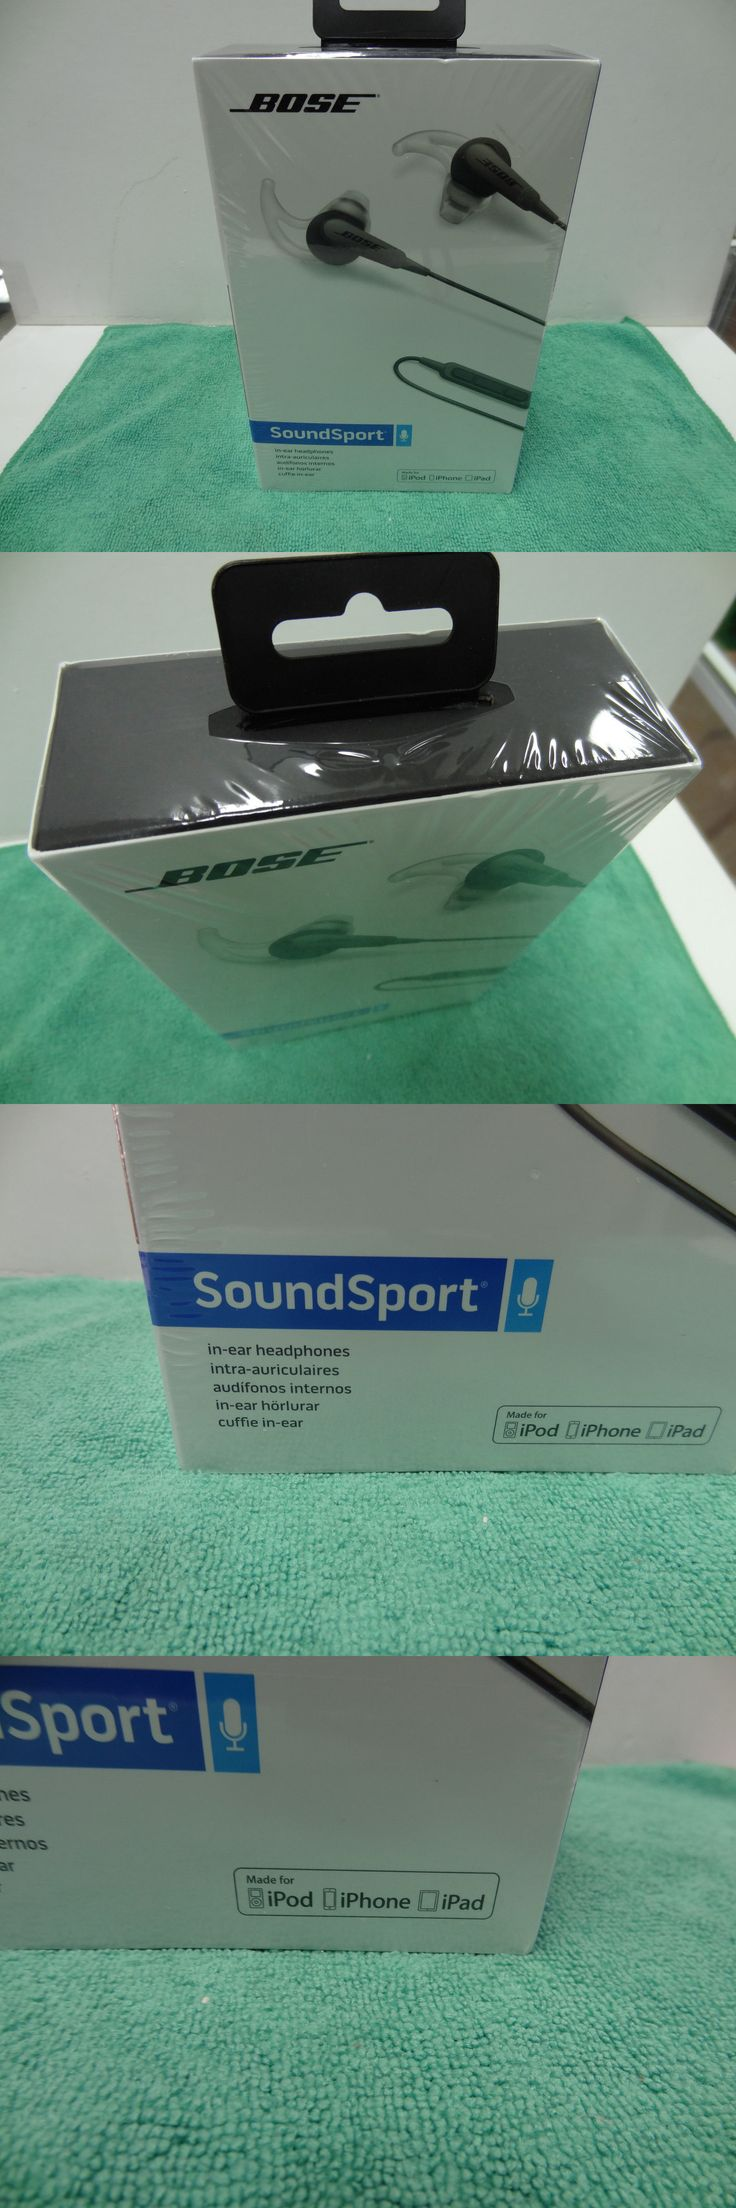 Other iPod and Audio Player Accs: Bose Sound Sport In-Ear Headphones Charcoal Brand New! -> BUY IT NOW ONLY: $58.99 on eBay!